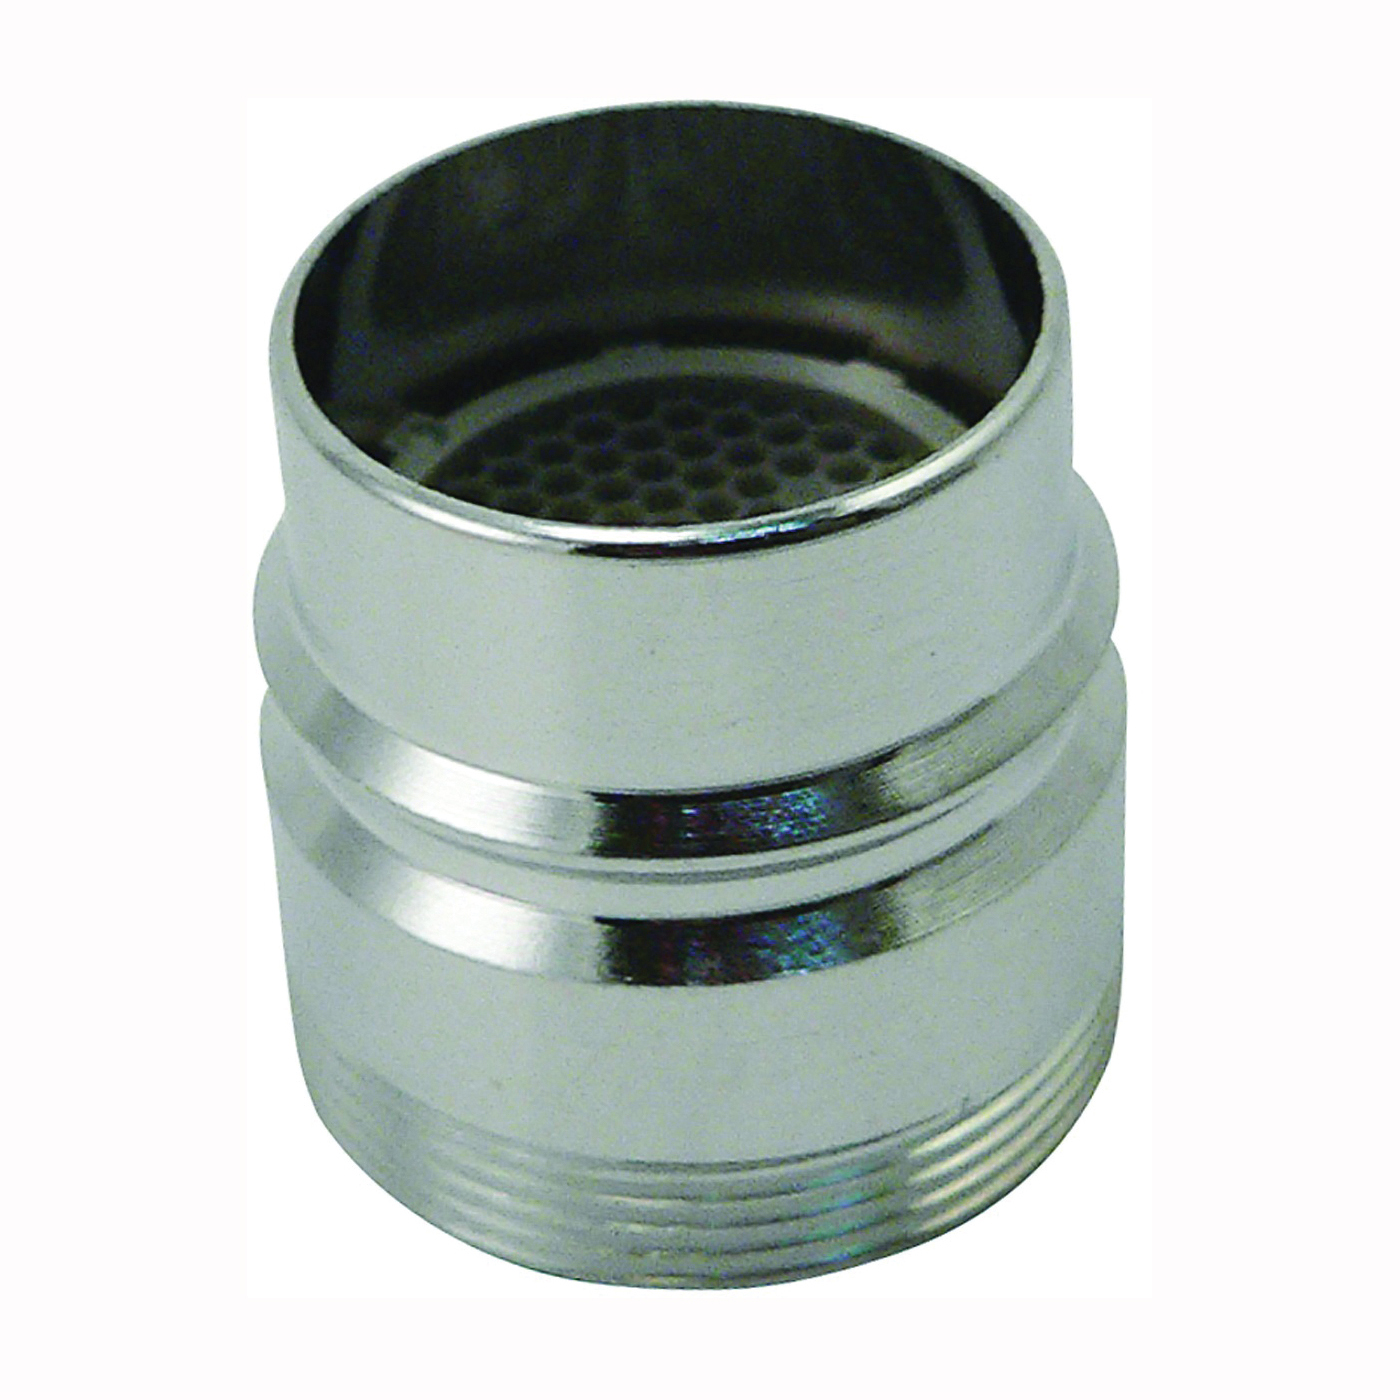 Picture of Plumb Pak PP28003 Faucet Aerator Adapter, 15/16-27 x 55/64 in, Male/Female, Brass, Chrome